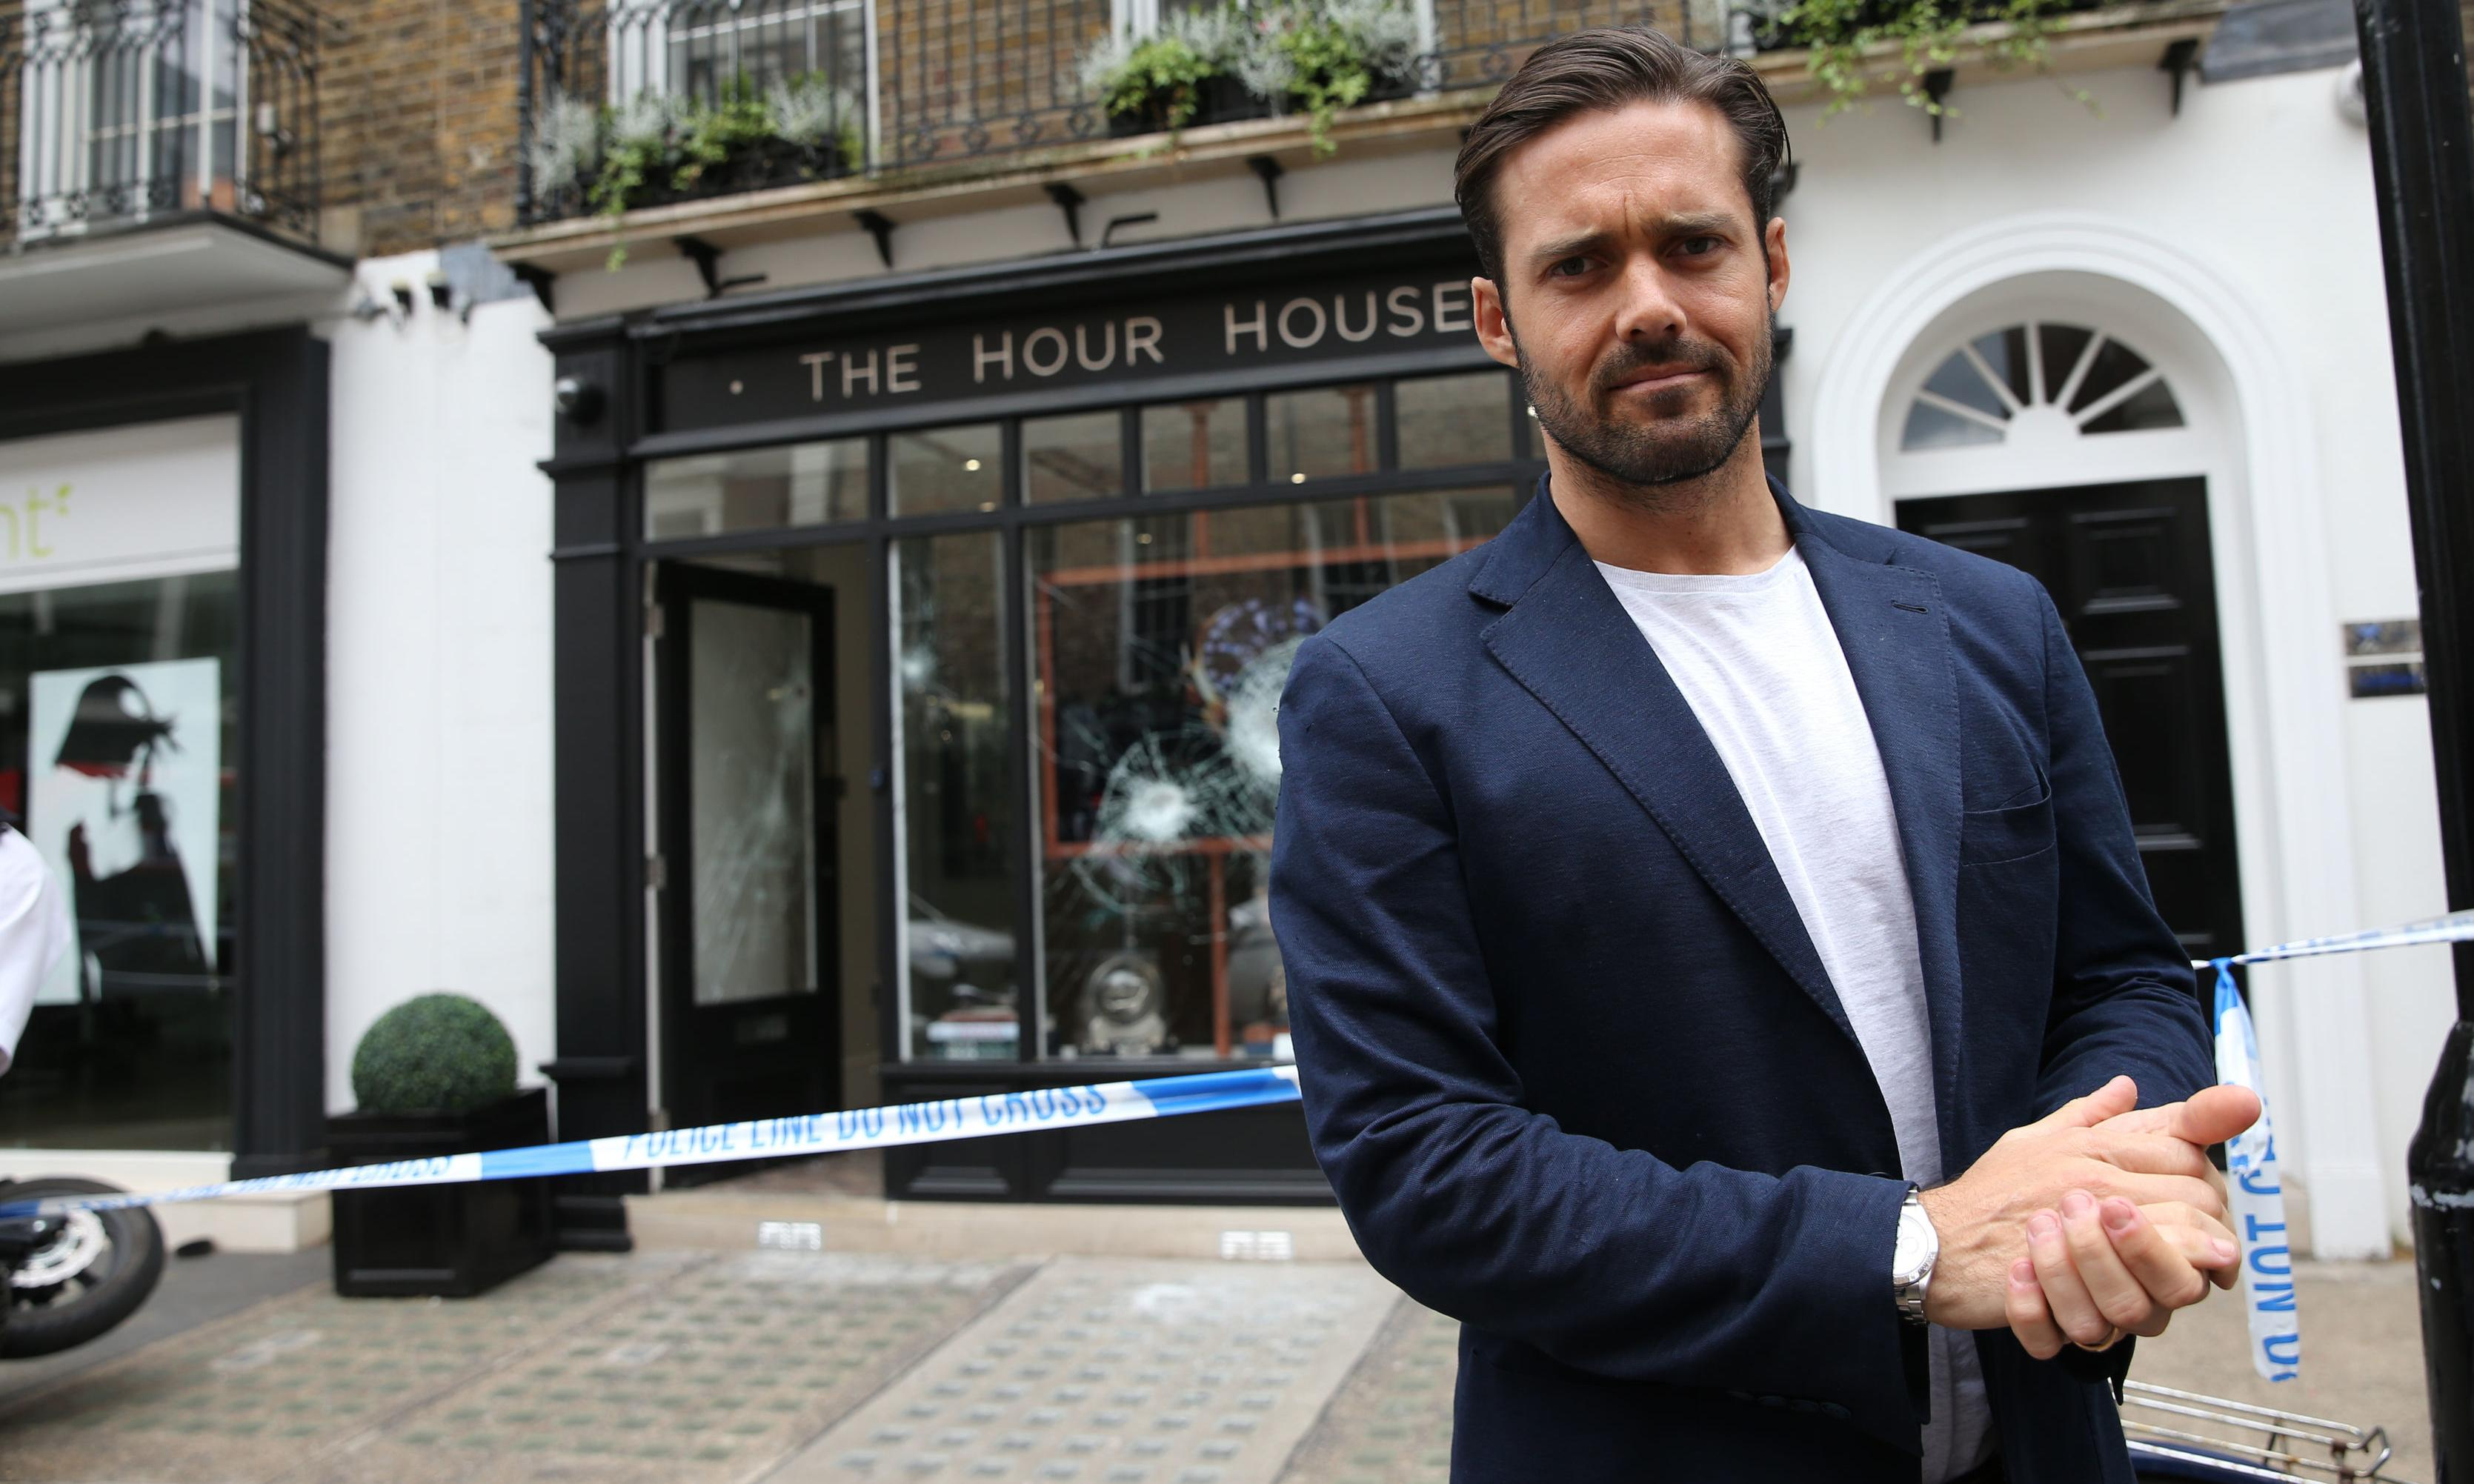 Made in Chelsea star caught up in armed smash-and-grab raid